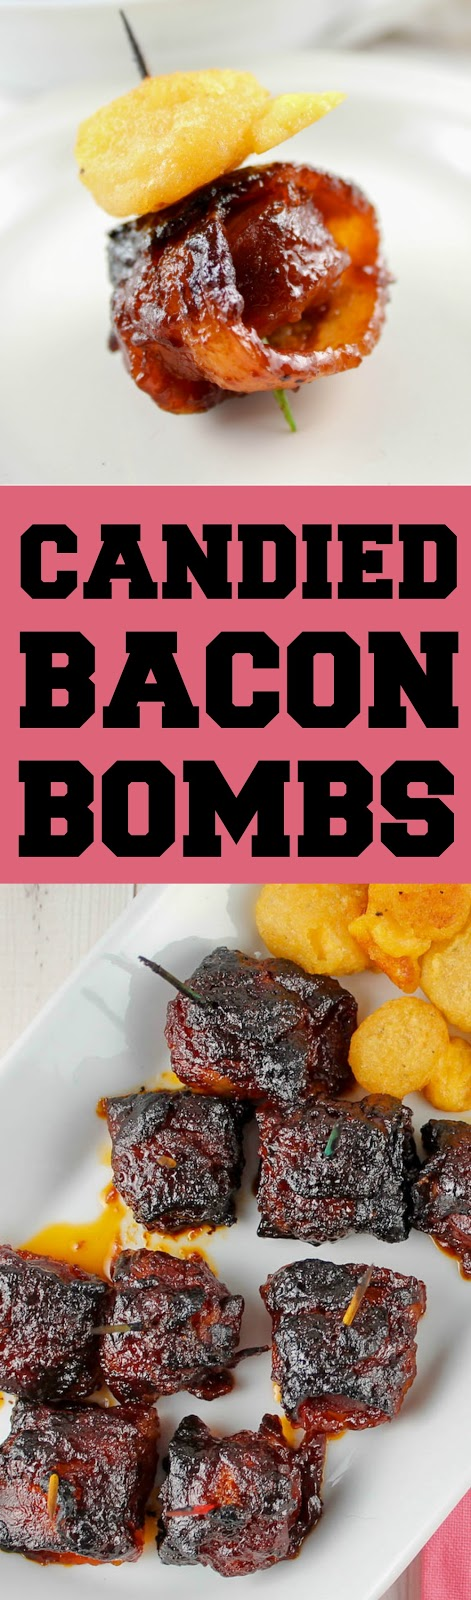 These Candied Bacon Bombs are so delicious! I first had them in Birmingham Alabama and had to come home and recreate them! Kielbasa, bacon, bbq sauce and a secret ingredient ;-) #bacon #baconbomb